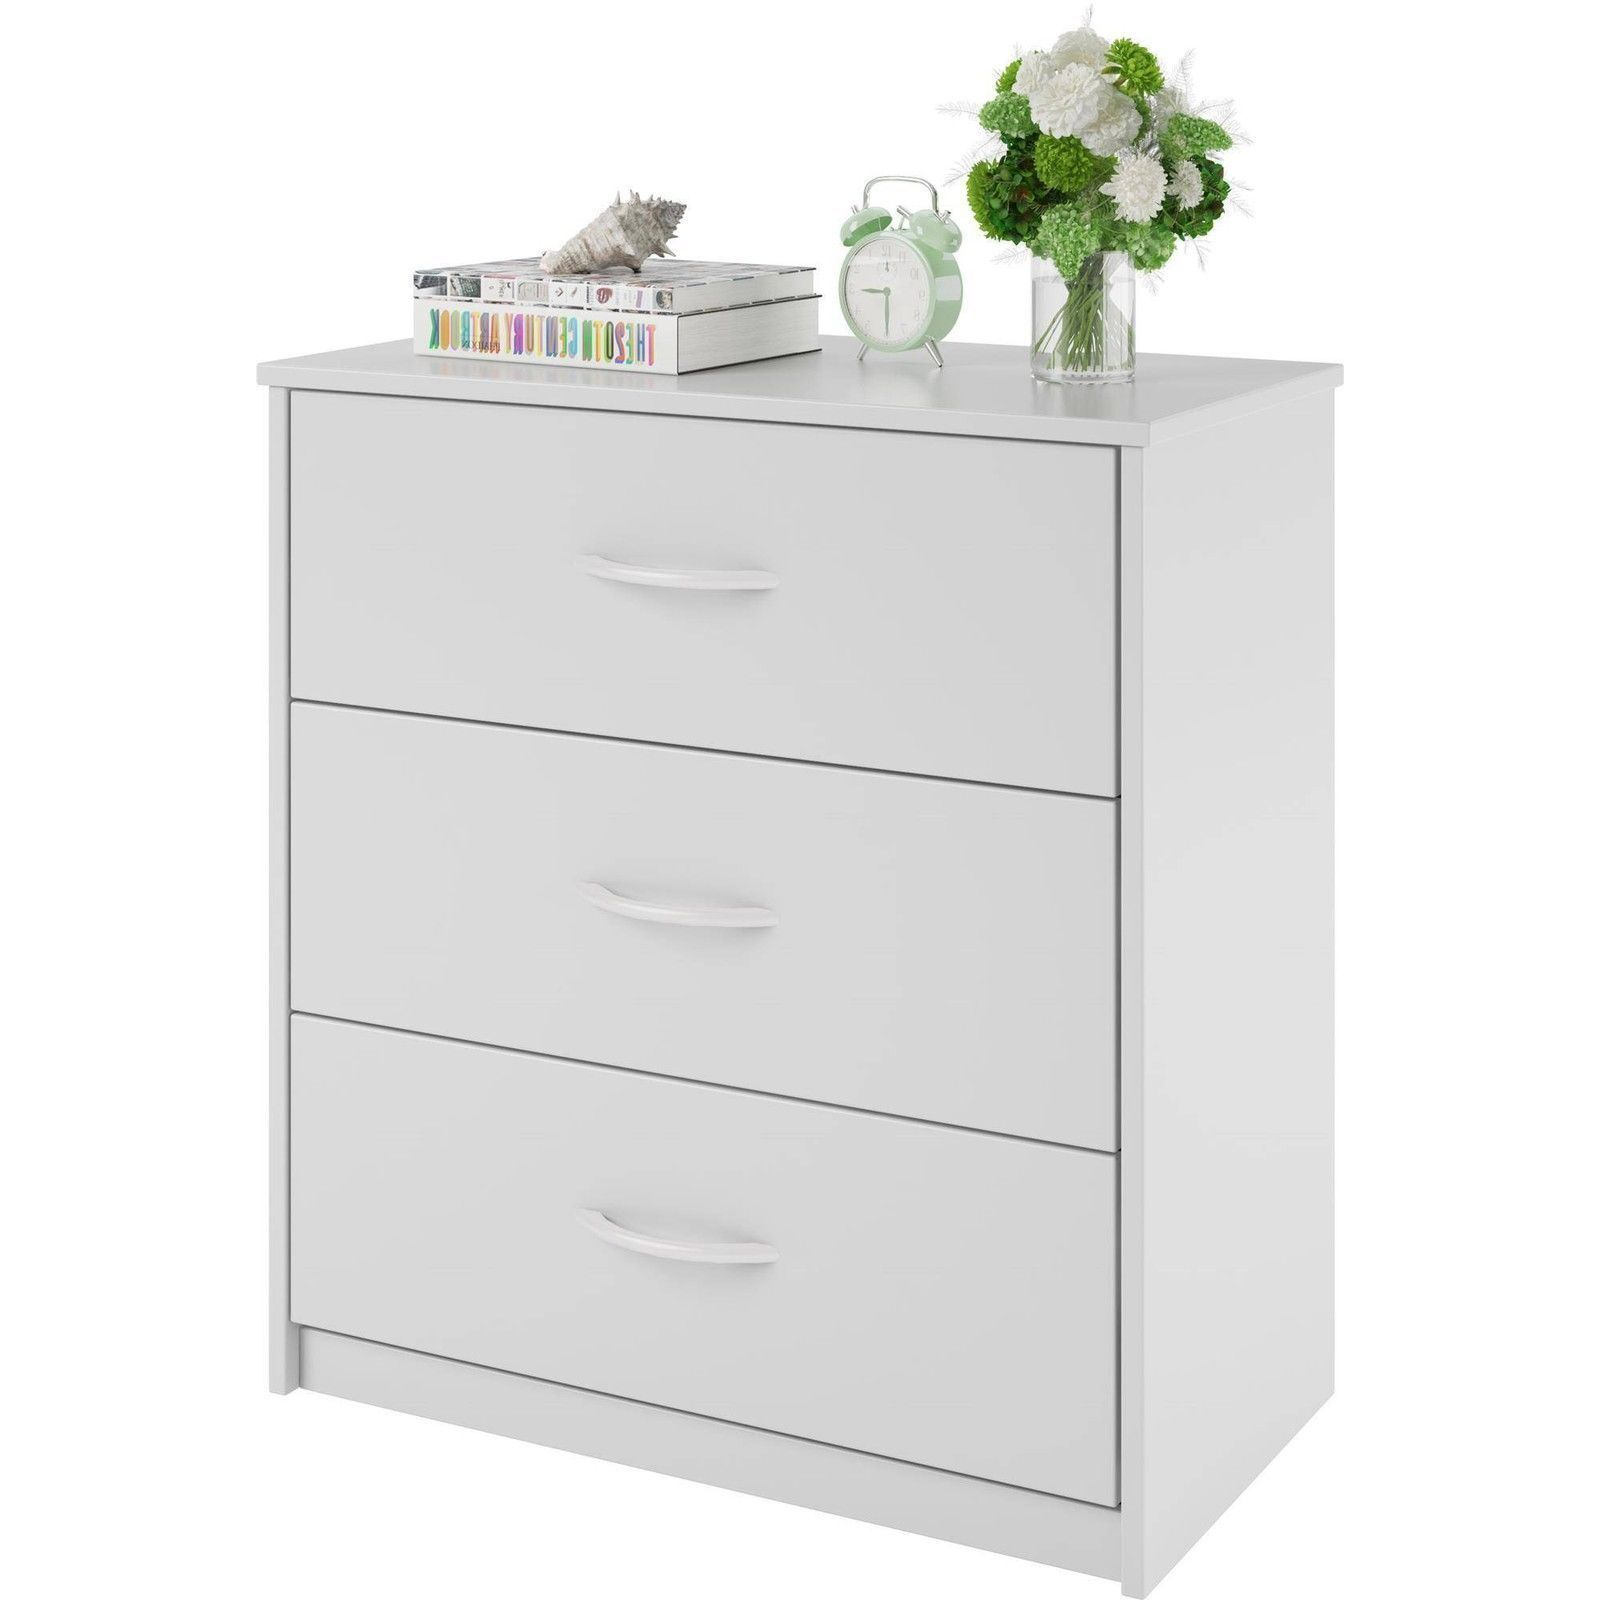 soft johnlewis ashby antique com main at white silver pdp lewis cross rsp online buysilver dresser lightweight john style